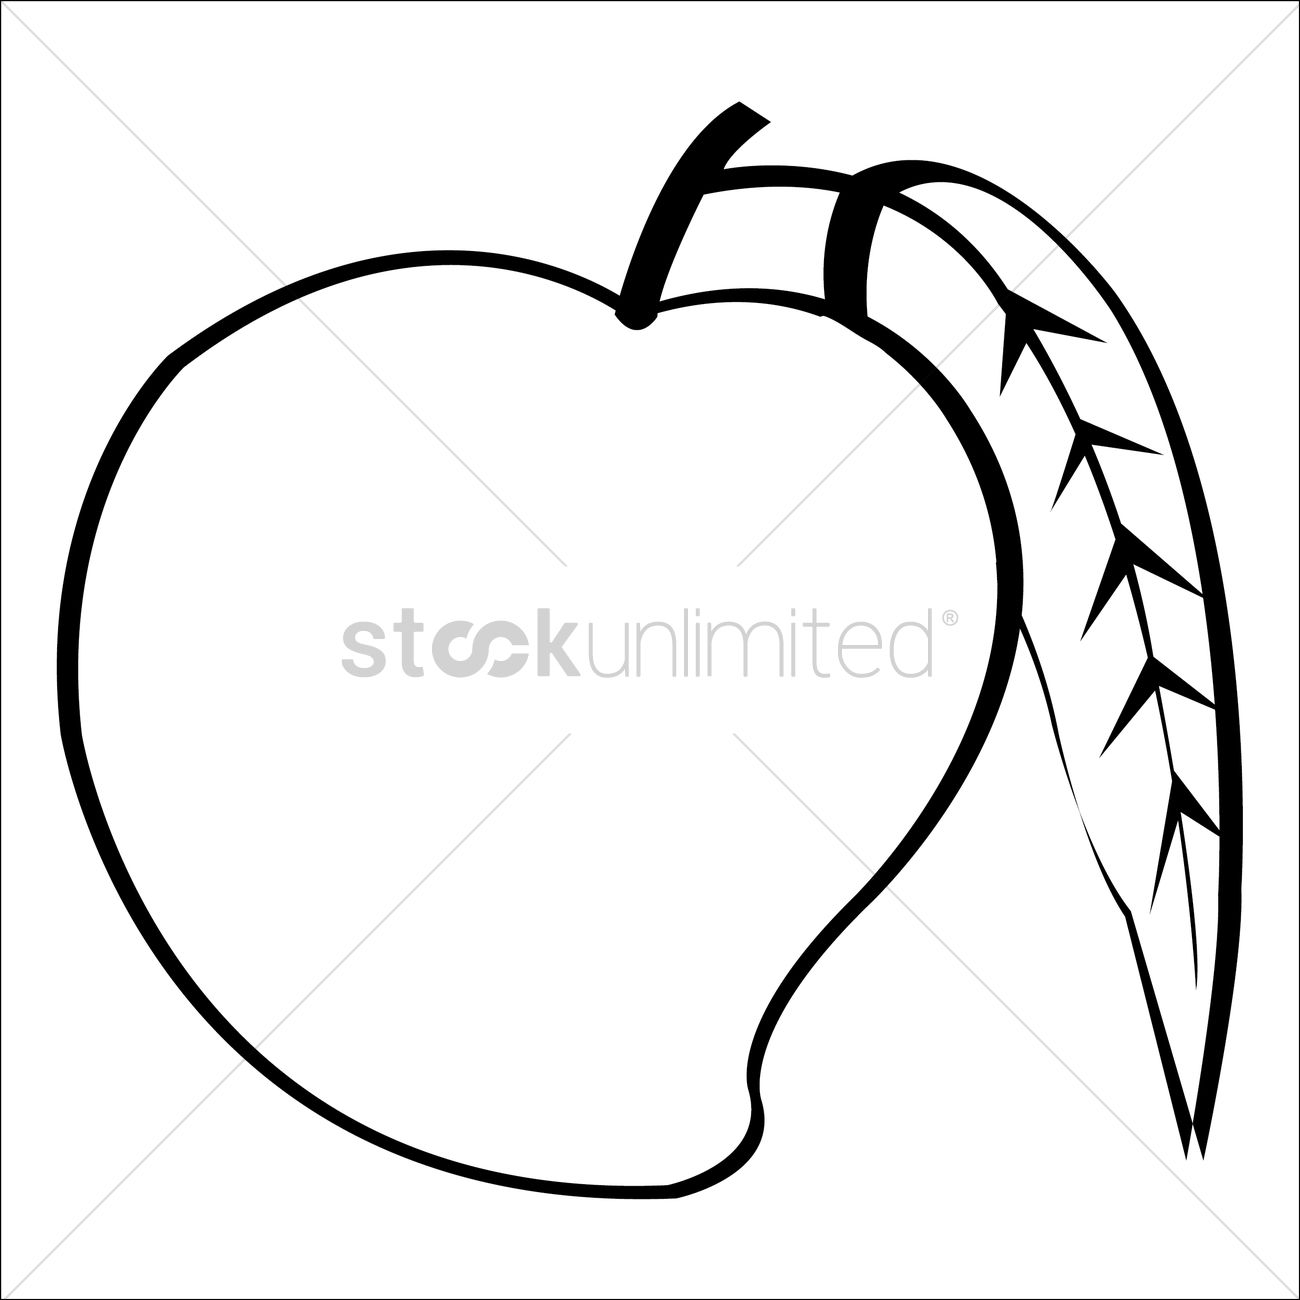 Line Art Mango : Mango vector image stockunlimited